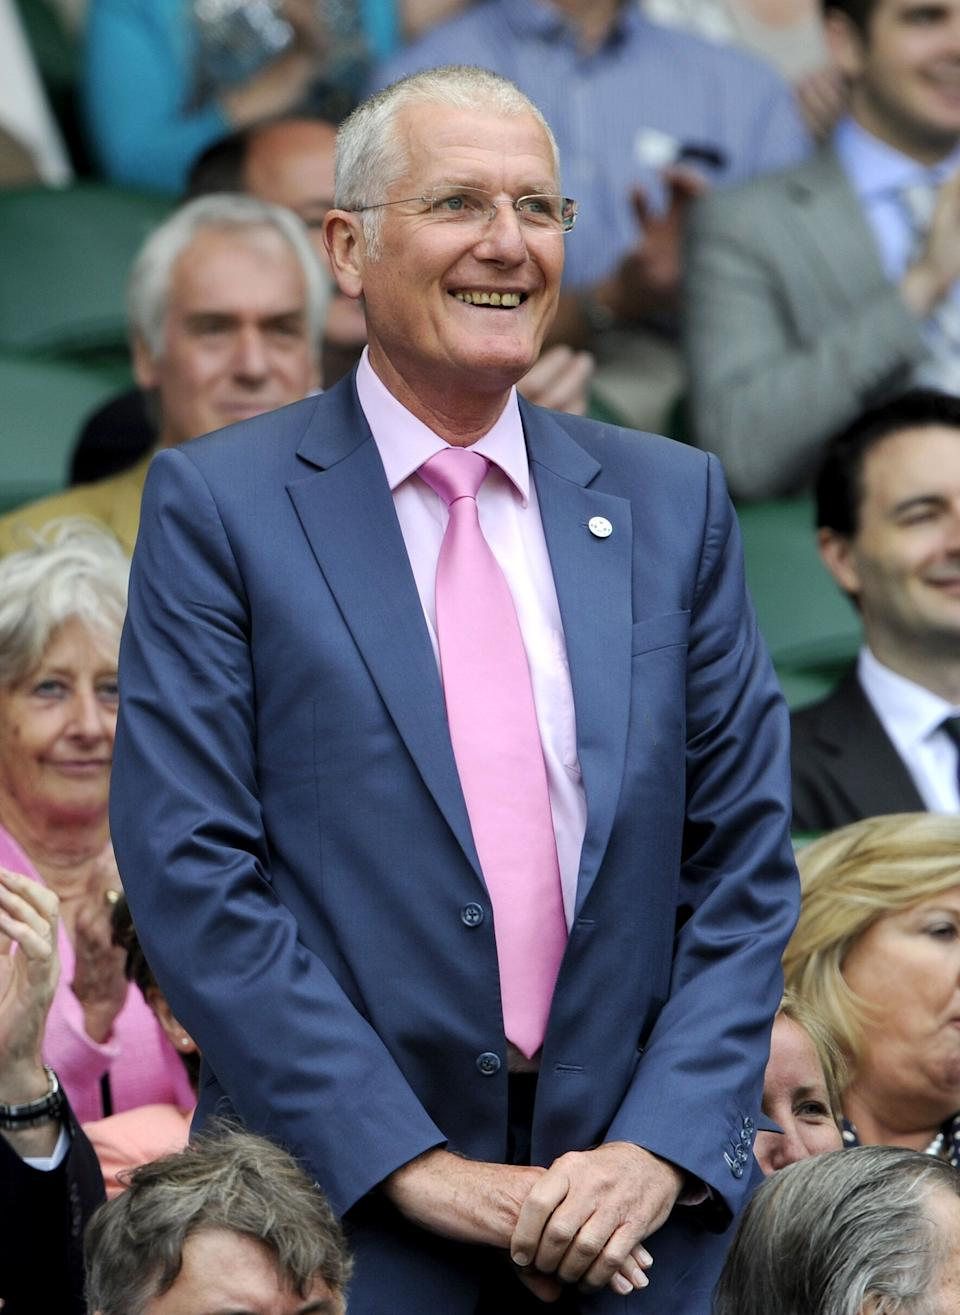 <strong>Bob Willis (1949-2019)<br /></strong>The cricketing legend became known as a commentator and TV pundit in the latter years of his career.